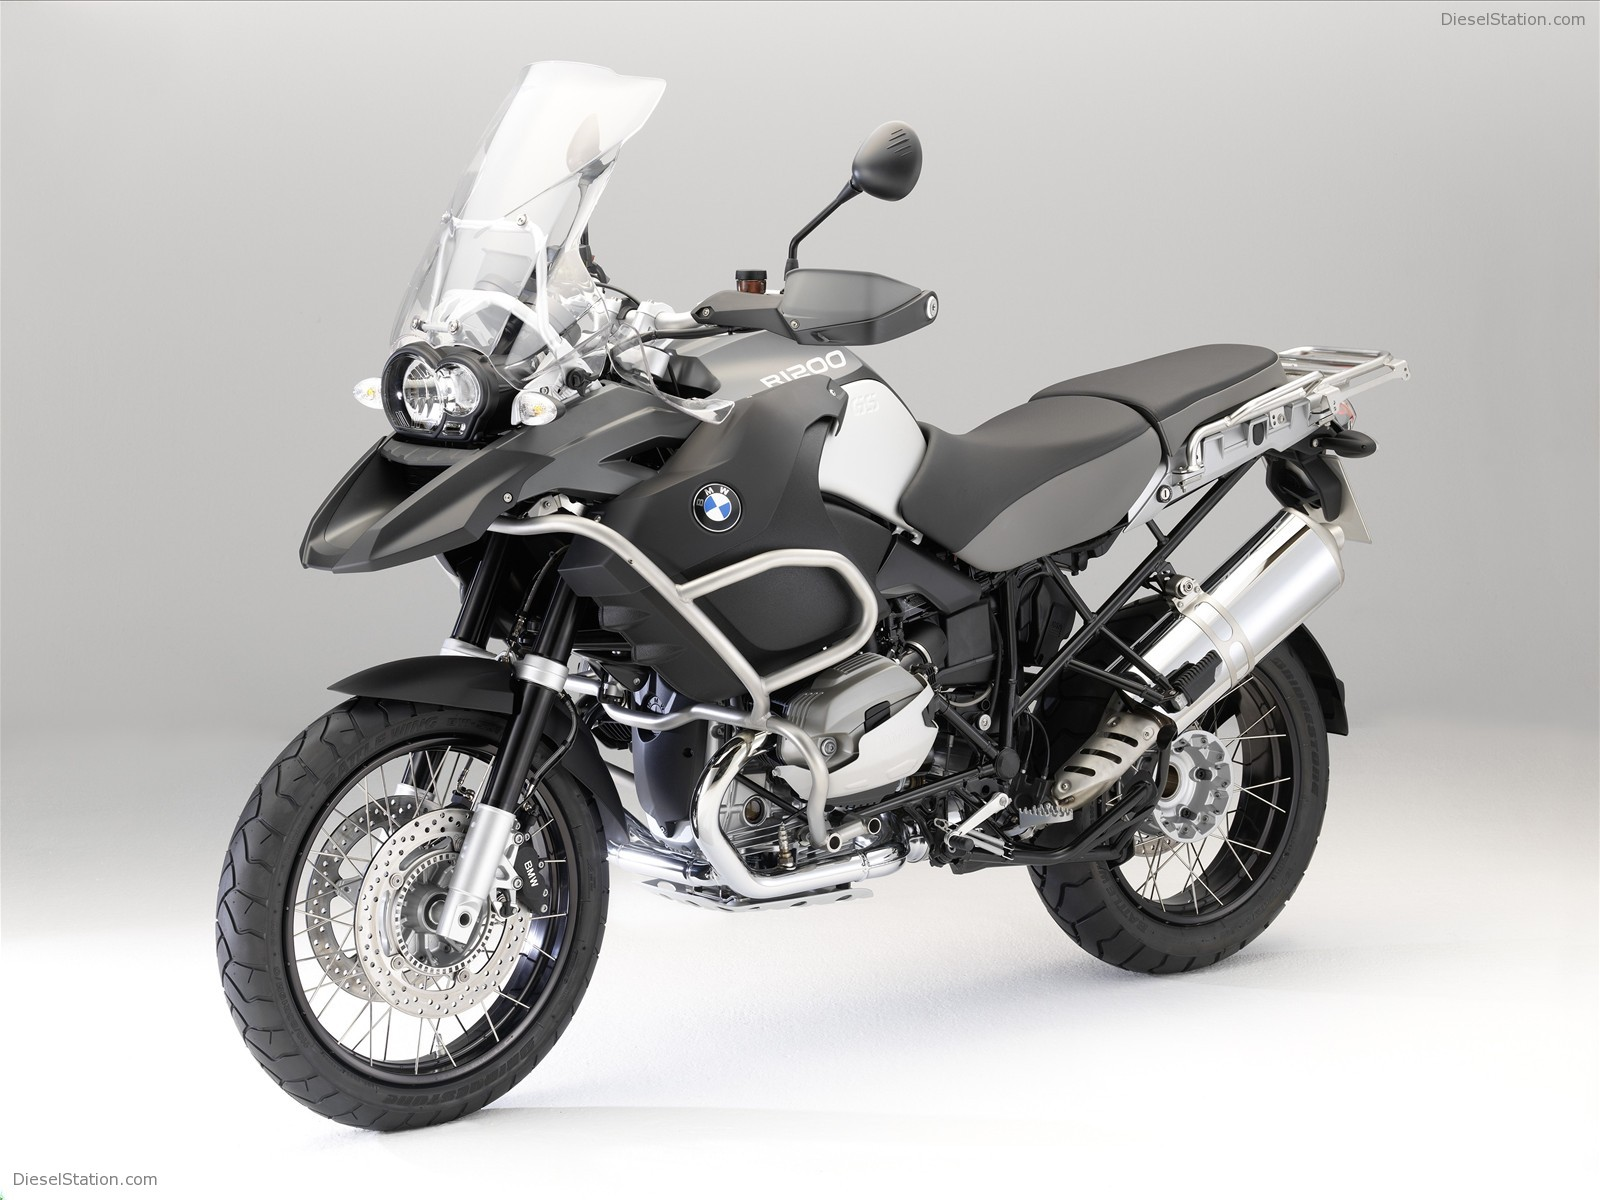 BMW R1200GS images #8206